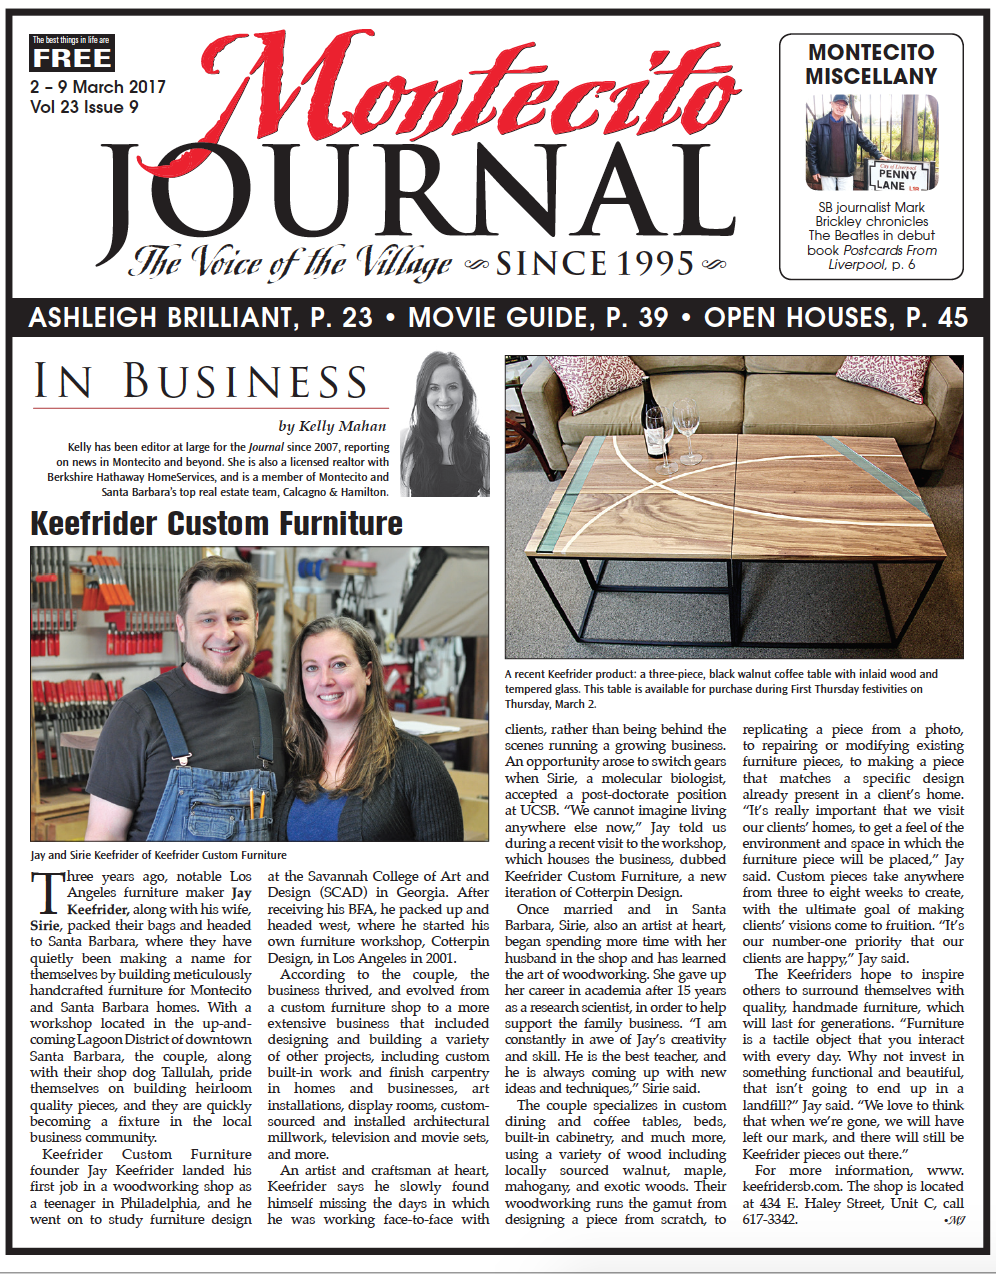 ON BUSINESS:  Keefrider Custom FurnitureMARCH 2ND, 2017 -